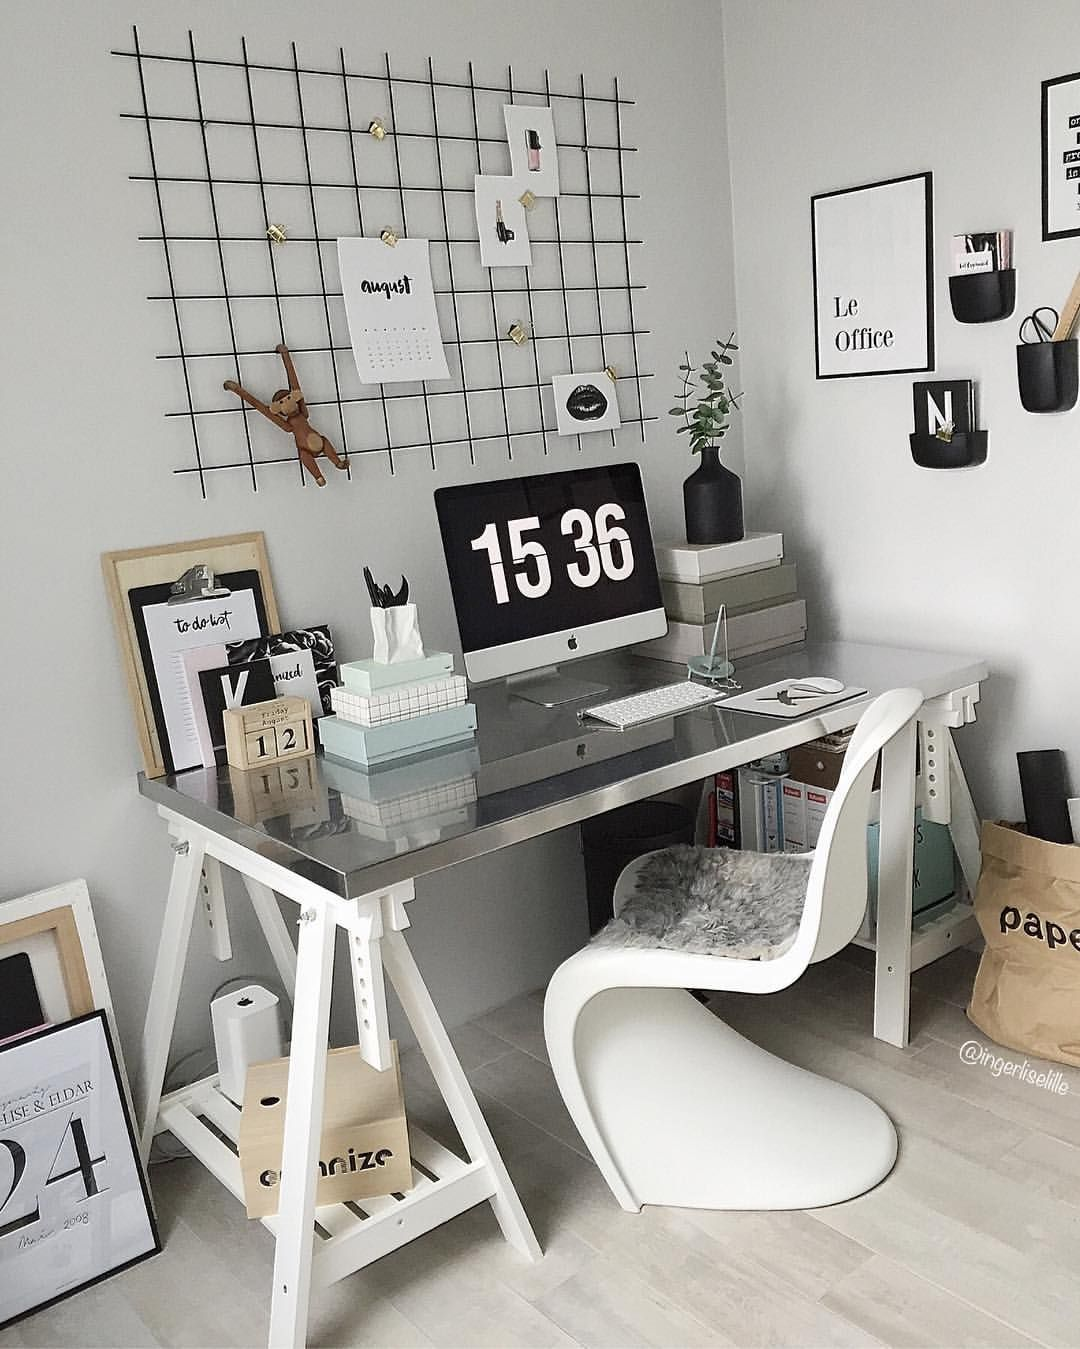 6 Things You Need On Your Desk Right Now Career Girl Daily